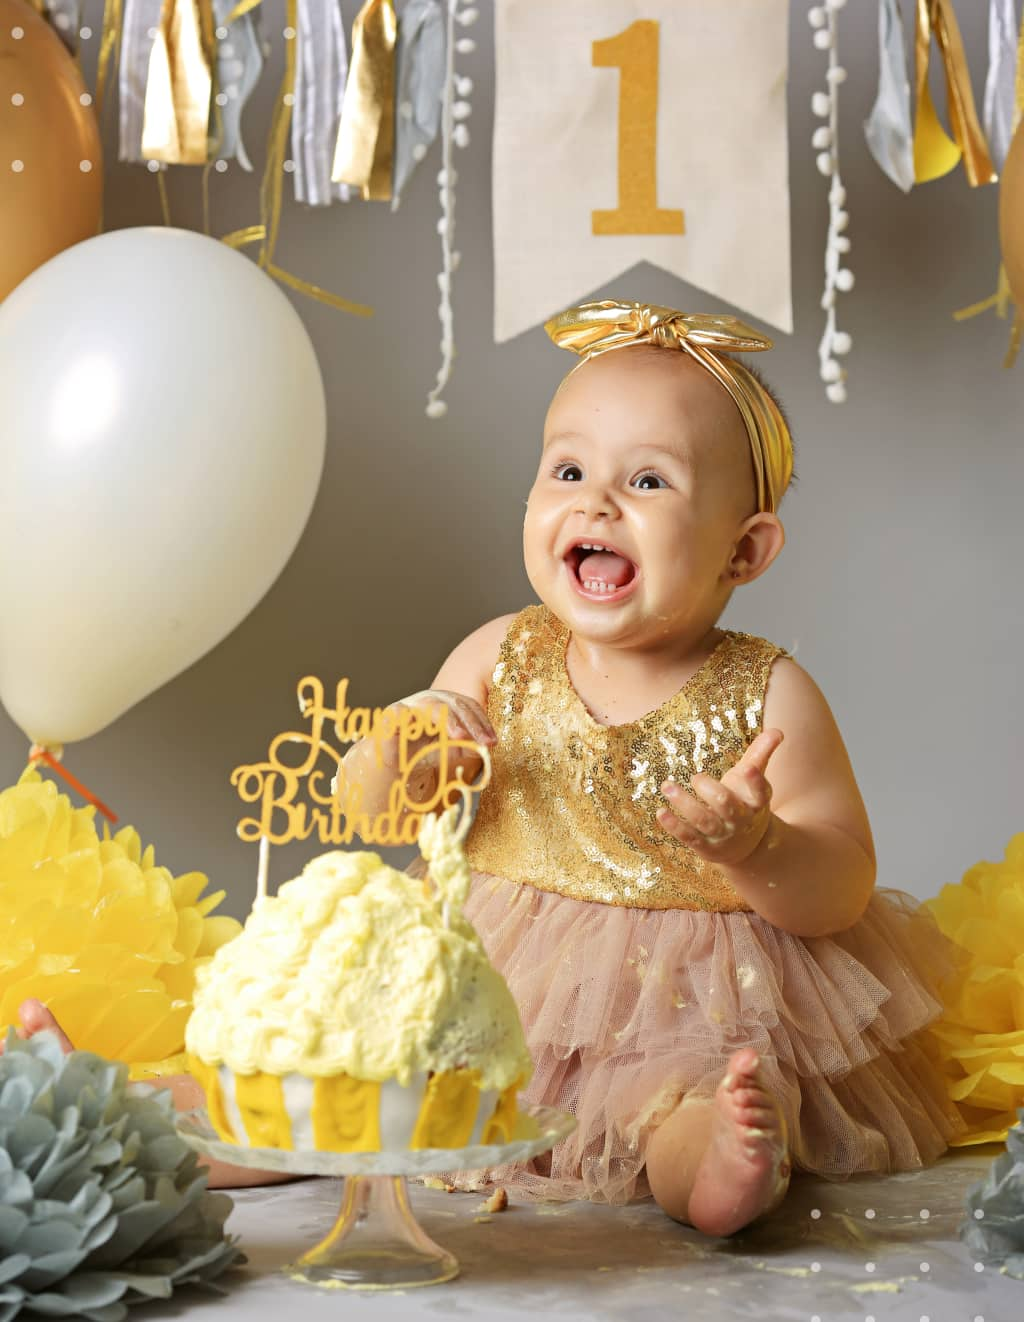 Materials of the Birthday Outfits for Kids